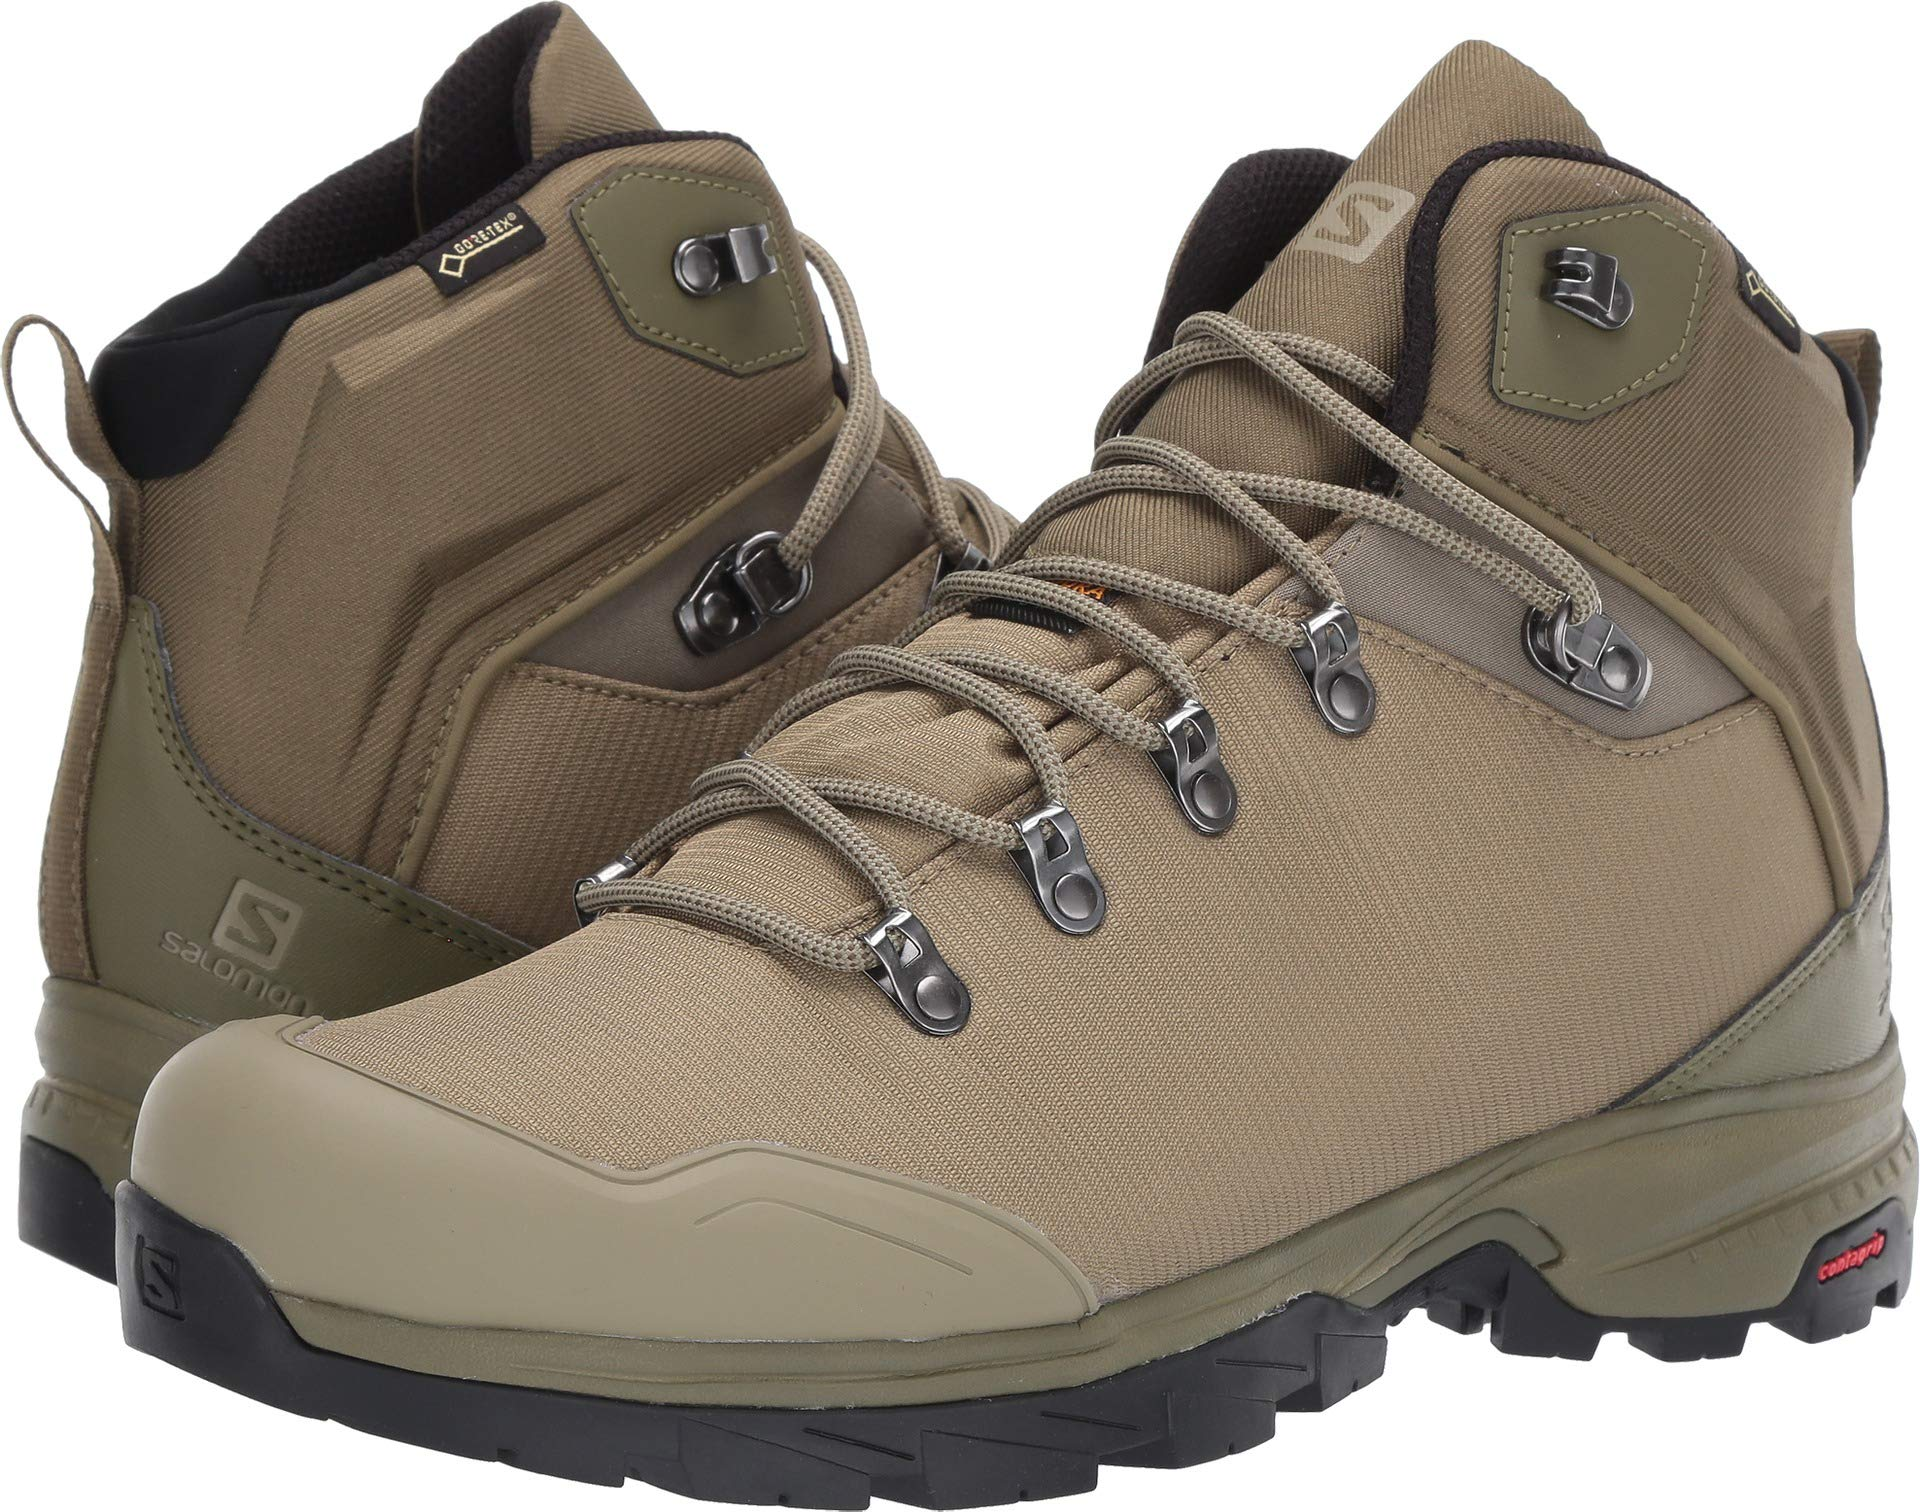 SALOMON Men's Outback 500 GTX Backpacking Boots, Burnt Olive/Mermaid/Black, 13 by Salomon